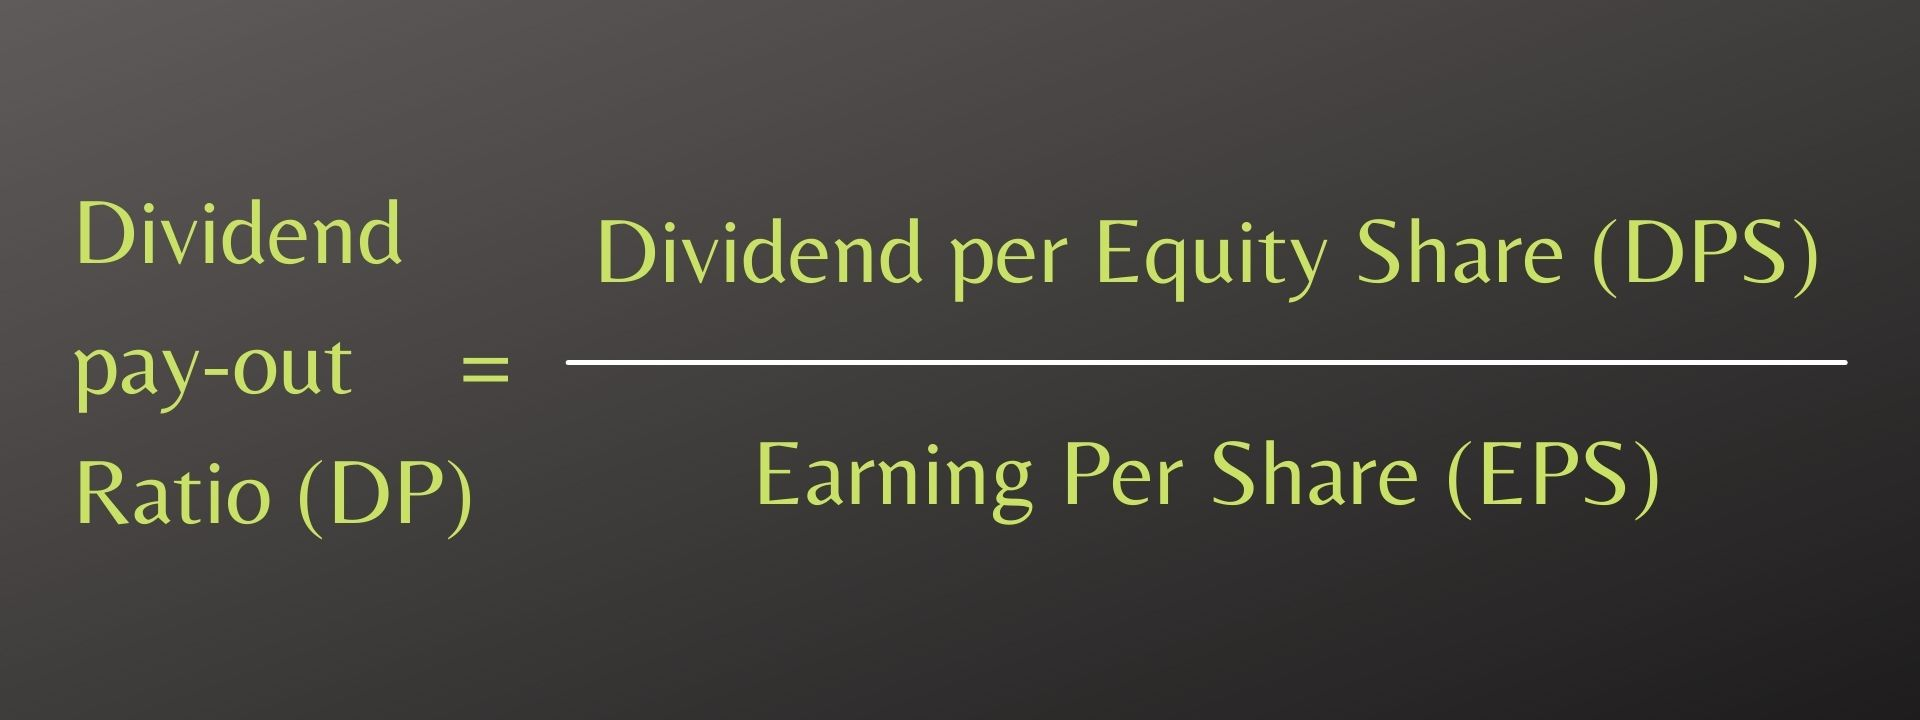 Dividend pay-out Ratio (DP)